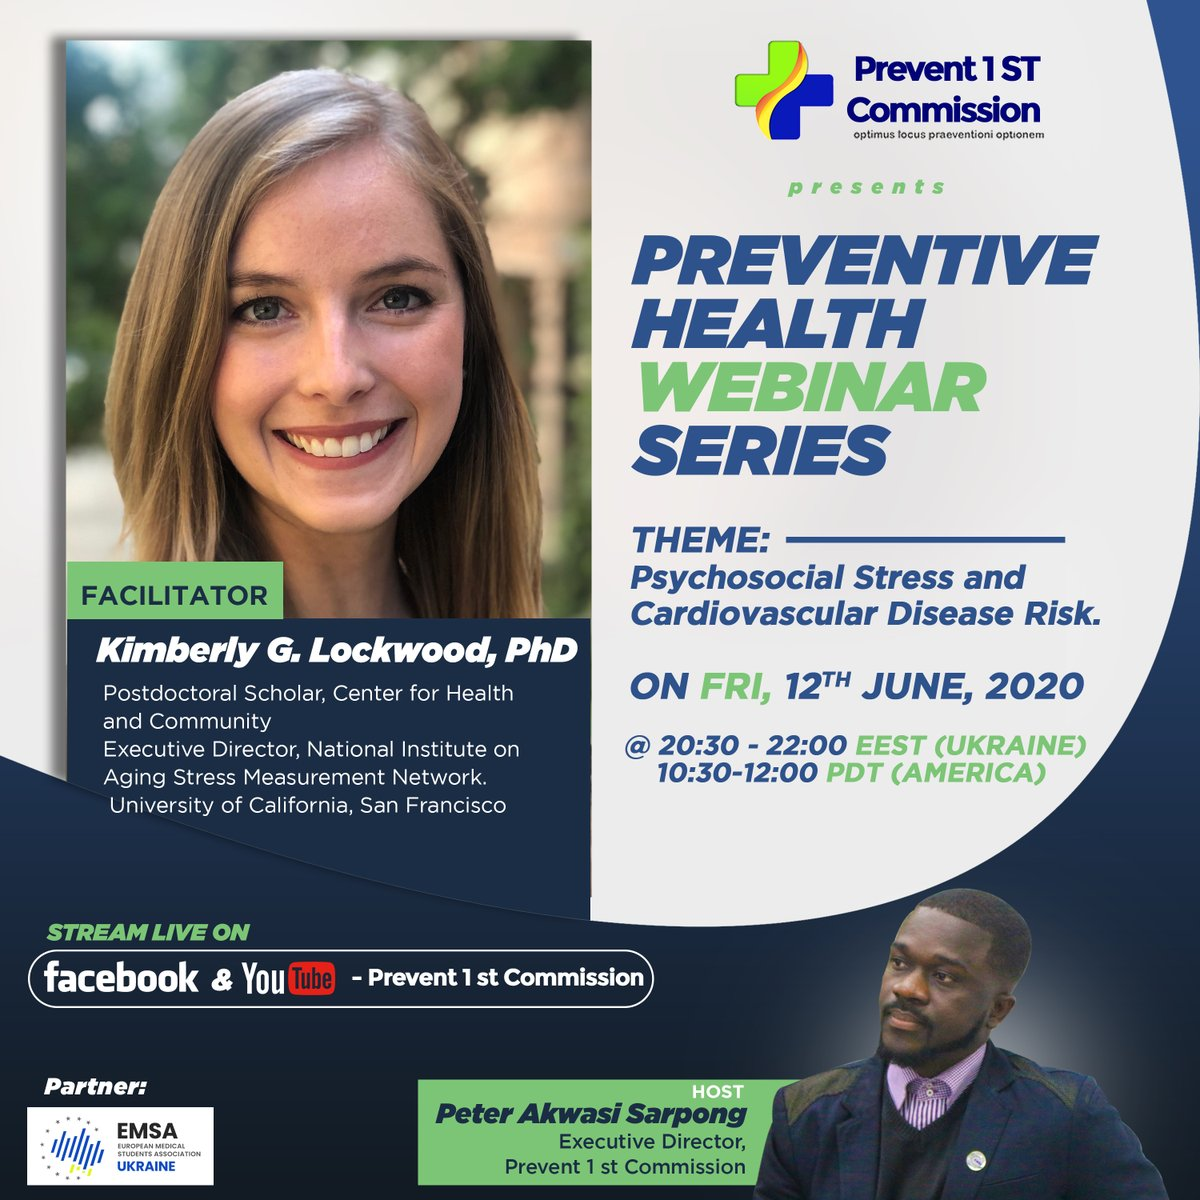 """Make a date with us!  """"Optimus locus praeventioni optionem"""" - Prevention is the Best Option!  #LetsPrevent1st #NCDs #ActOnNCDs #enoughNCDs #StressMastery #stress #HealthForAll #CVD #cardiovasculardisease #numberonecauseofdeath #heartdisease #hearthealth #heart https://t.co/GdjcKr0uYZ"""